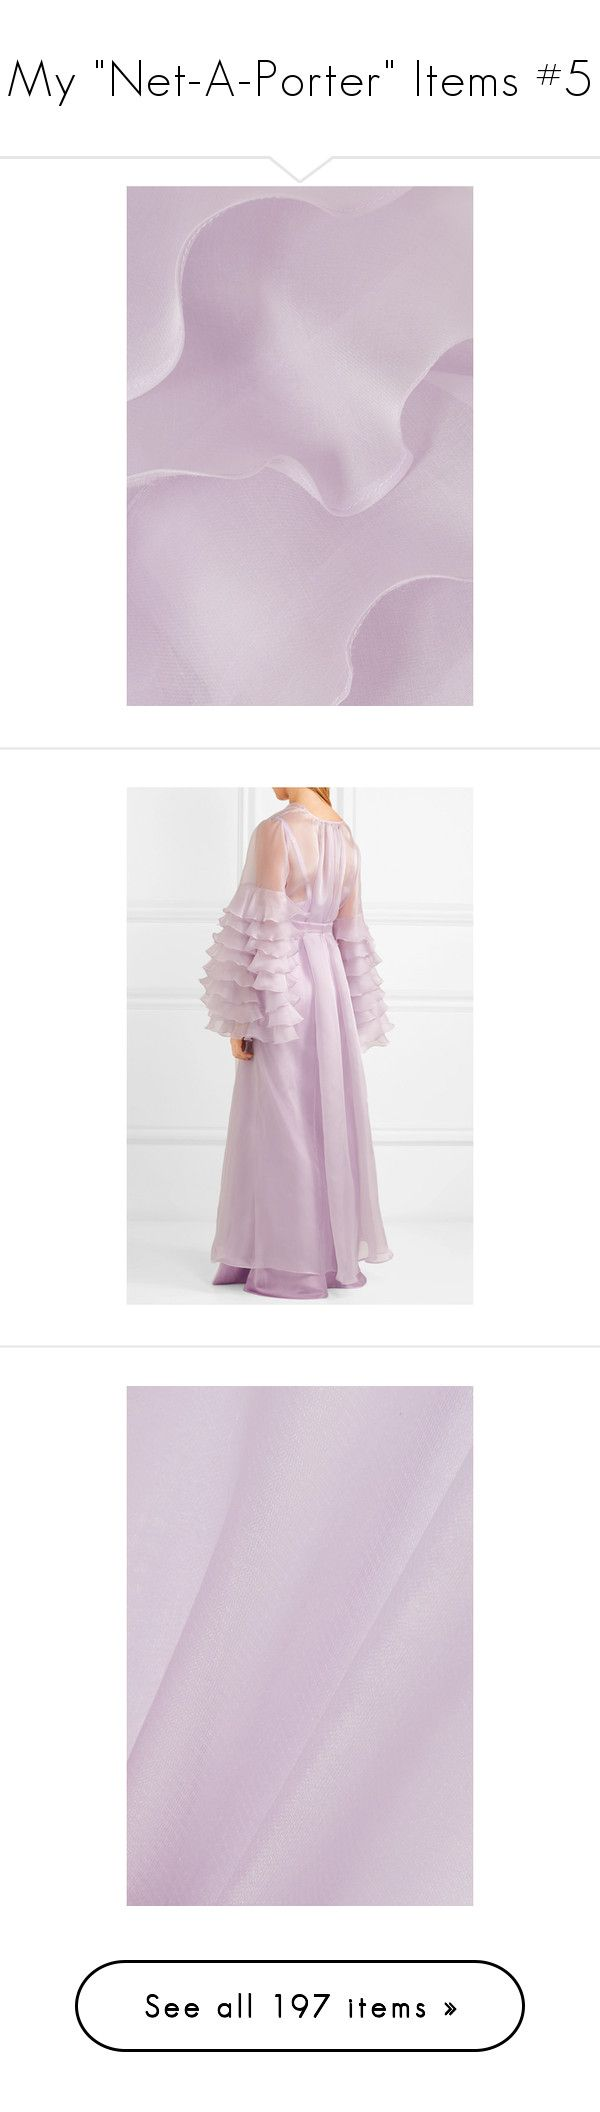 """My ""Net-A-Porter"" Items #5"" by iamasunshine ❤ liked on Polyvore featuring intimates, robes, transparent robe, rosamosario, sheer dressing gown, dressing gown, sheer robe, ruffle robe, sash belt and bath robes"